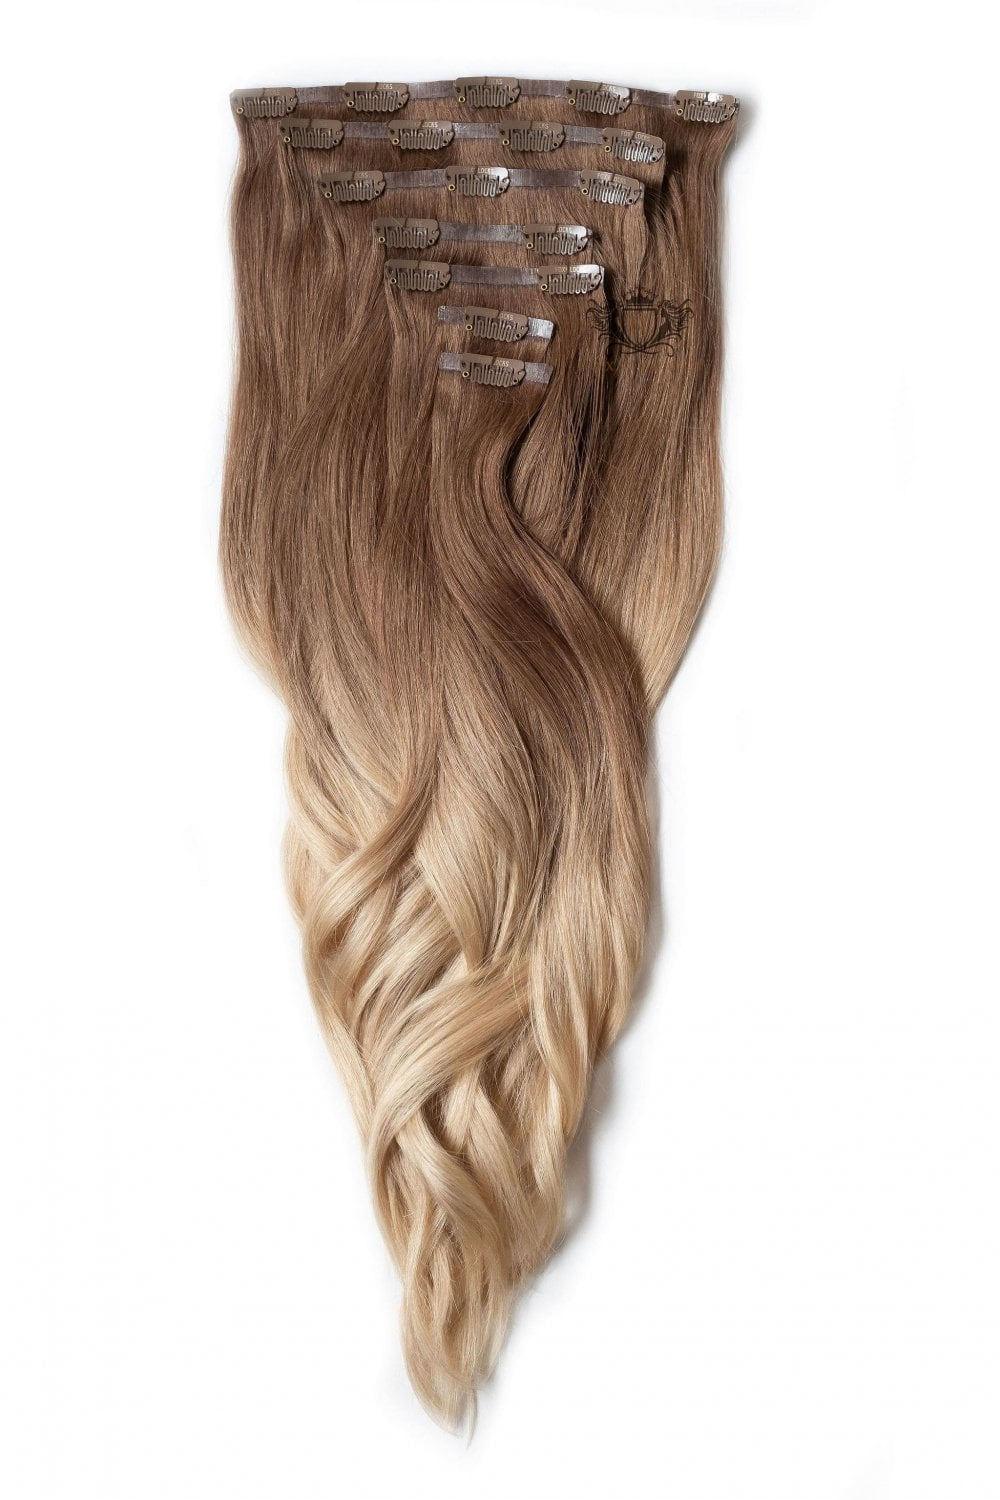 Honey Spice Ombre Elegant Seamless 18 Clip In Human Hair Extensions 130g Clip In Hair Extensions From Foxy Locks Uk